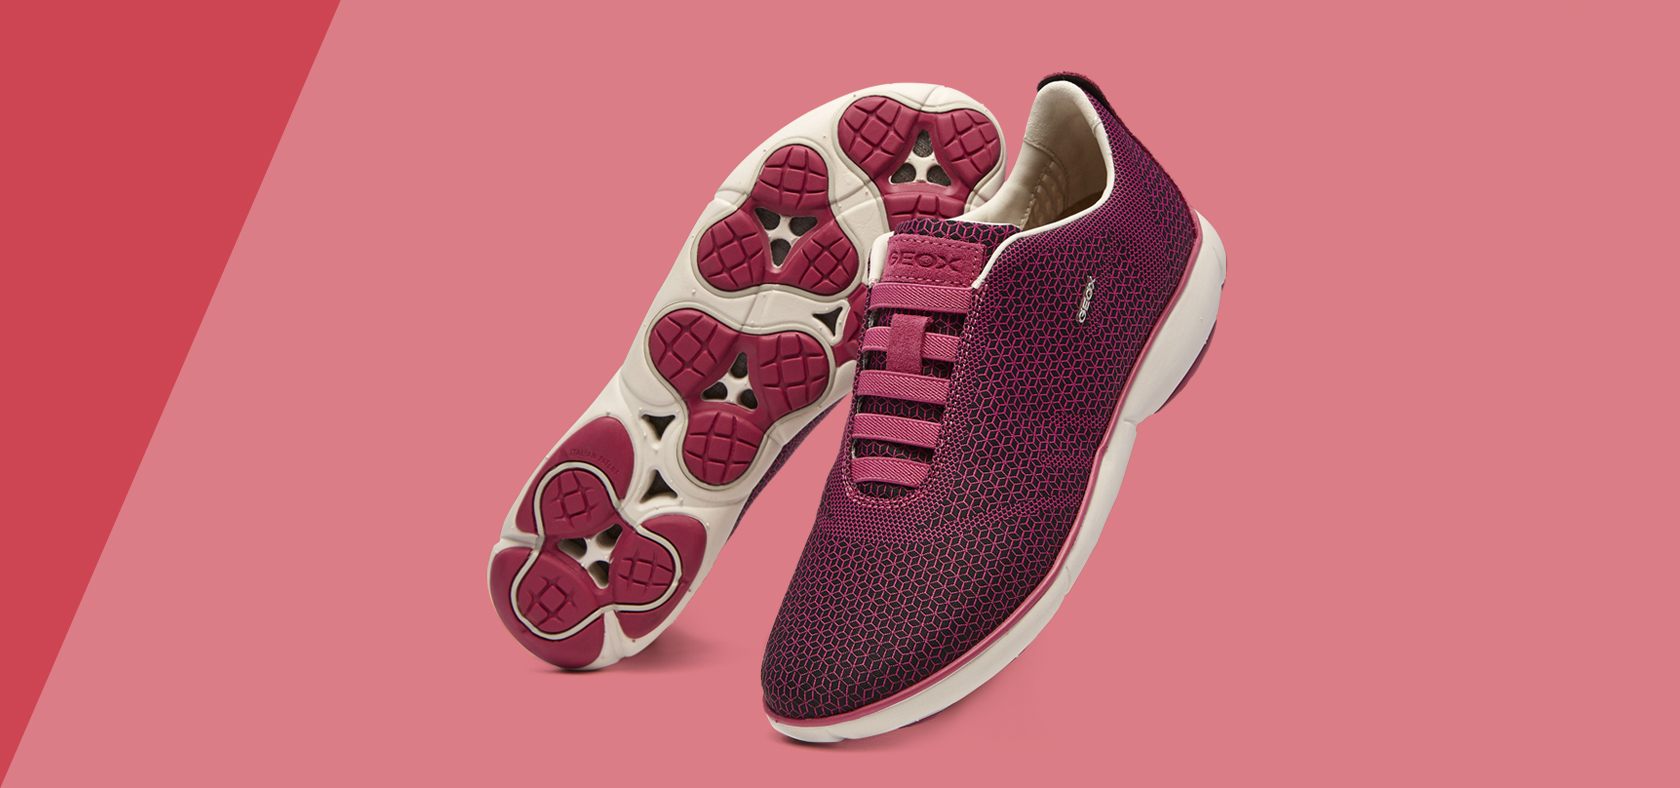 5c9a558401 Women's Shoes with Patented Nebula Technology | Geox